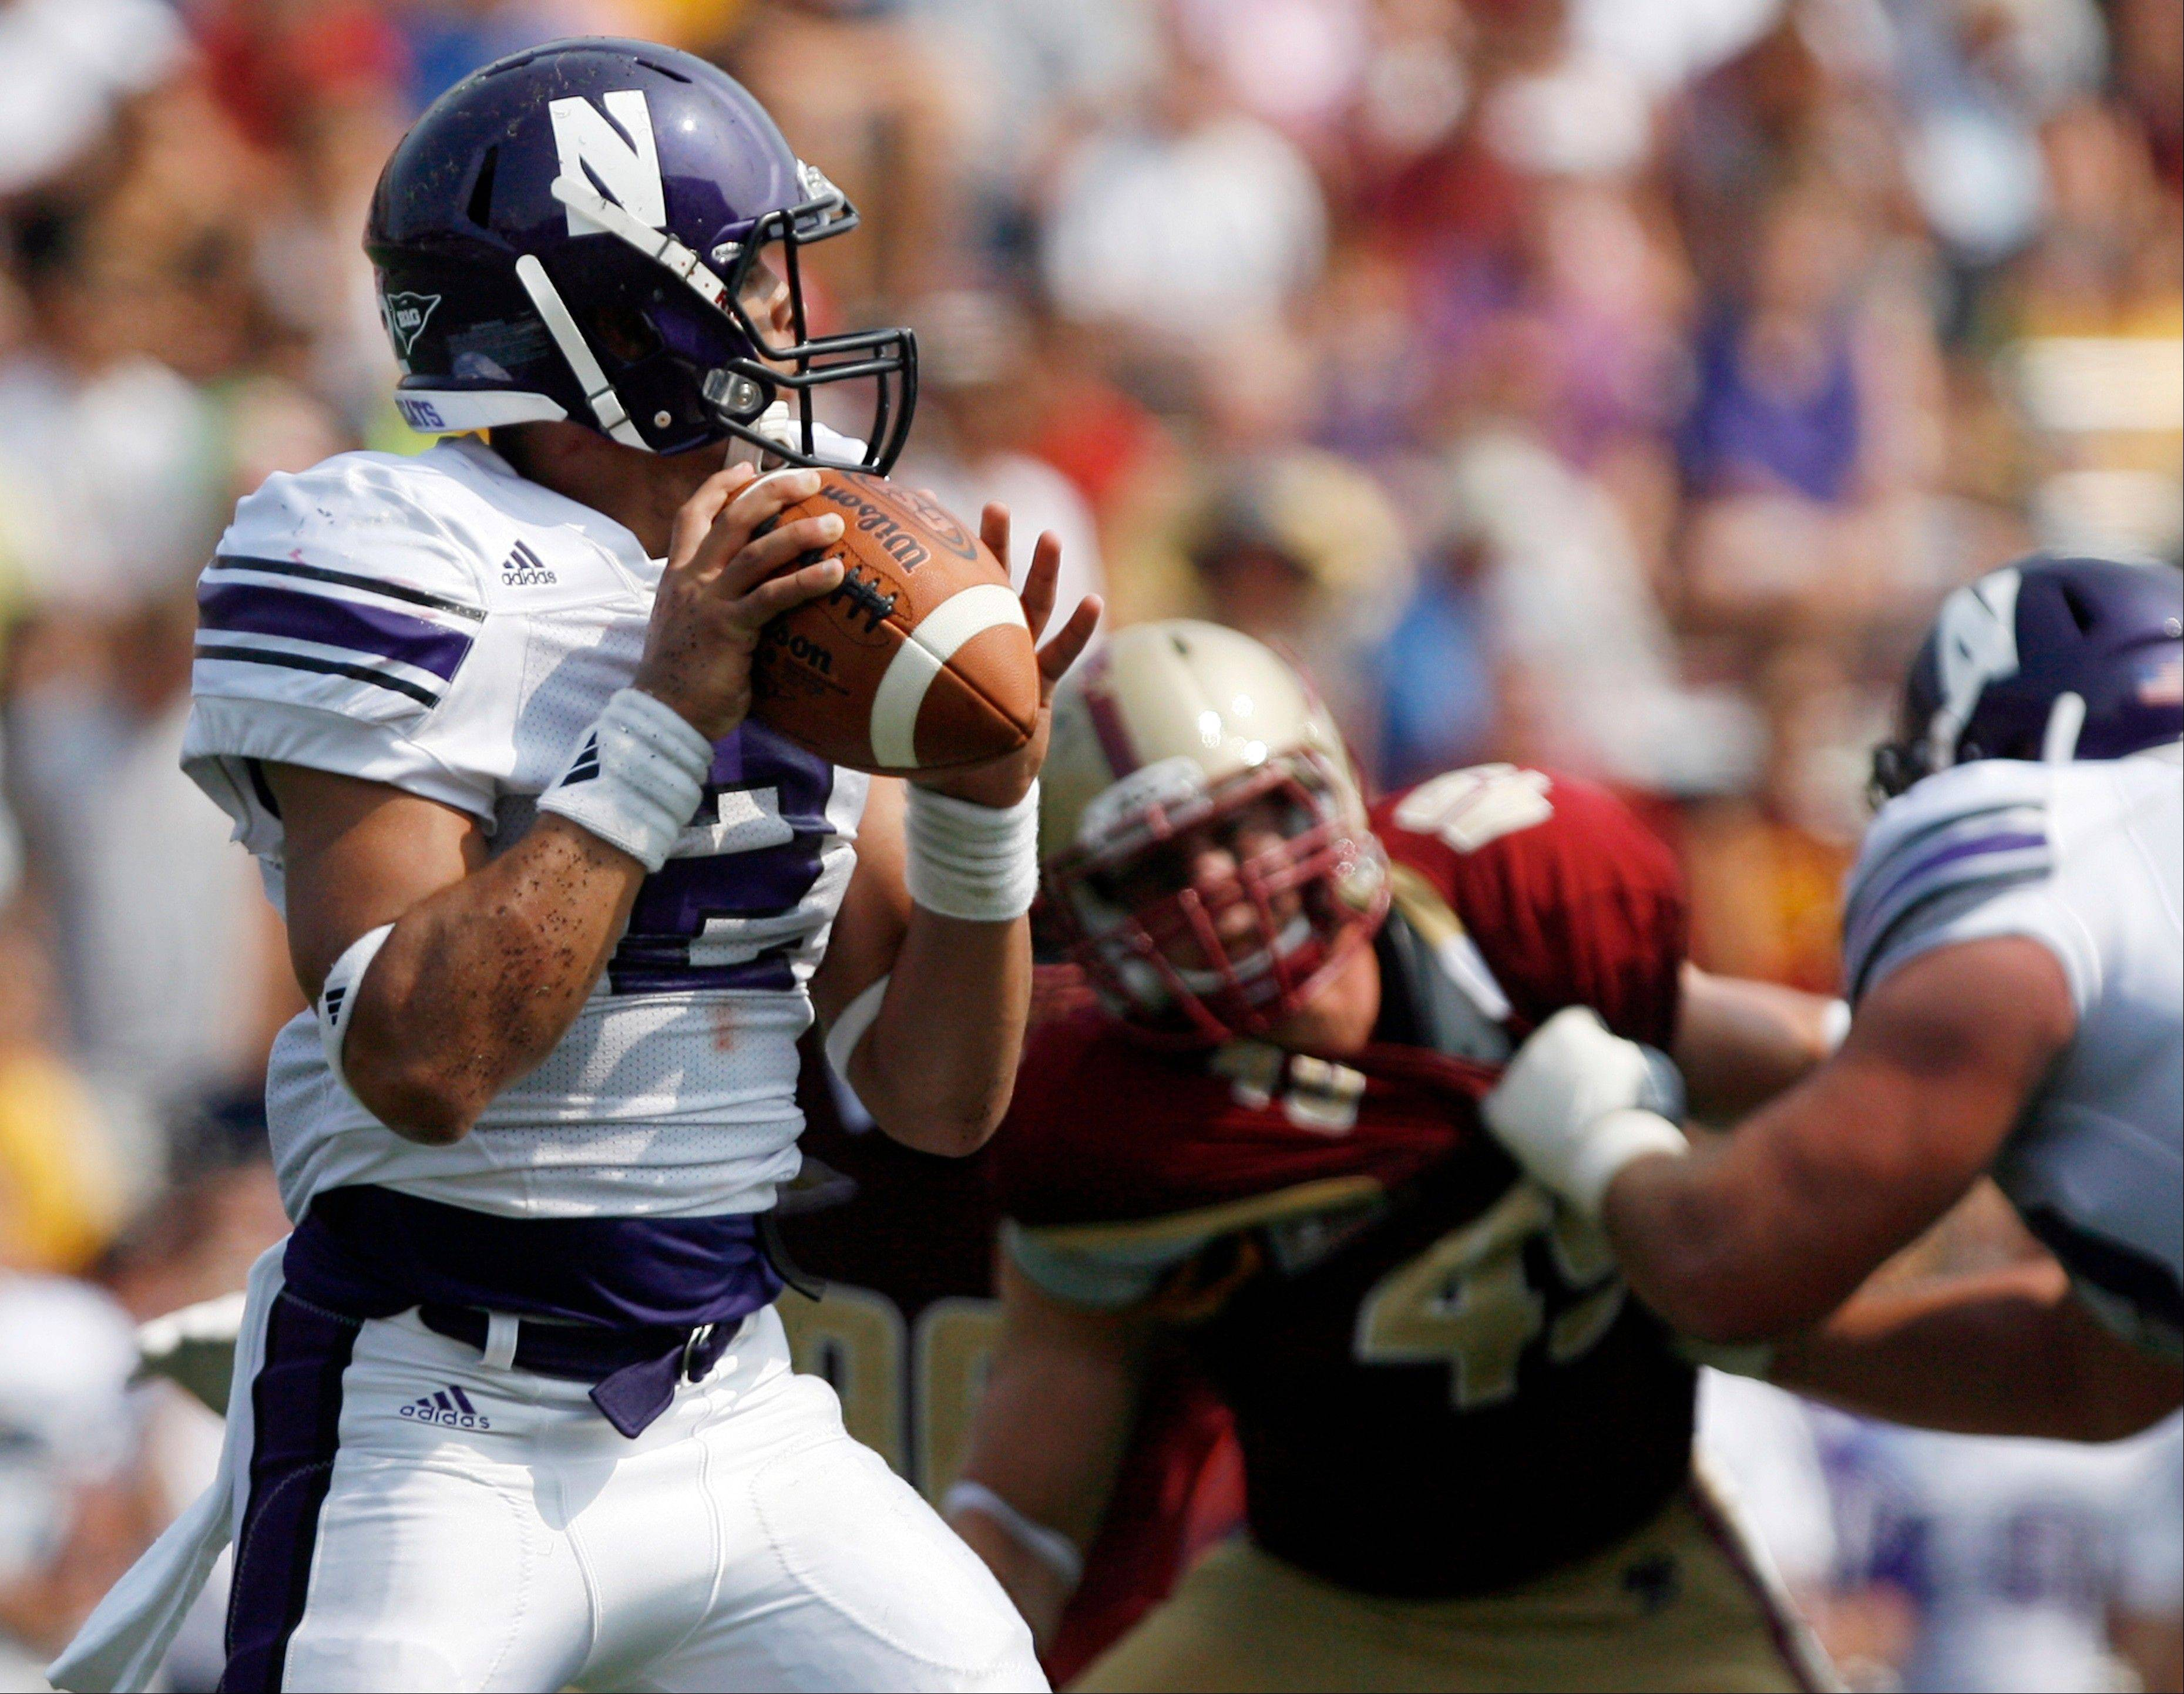 Northwestern quarterback Kain Colter (2) gets some blocking help as he looks to pass during the second half of an NCAA college football game Saturday against Boston College in Boston.